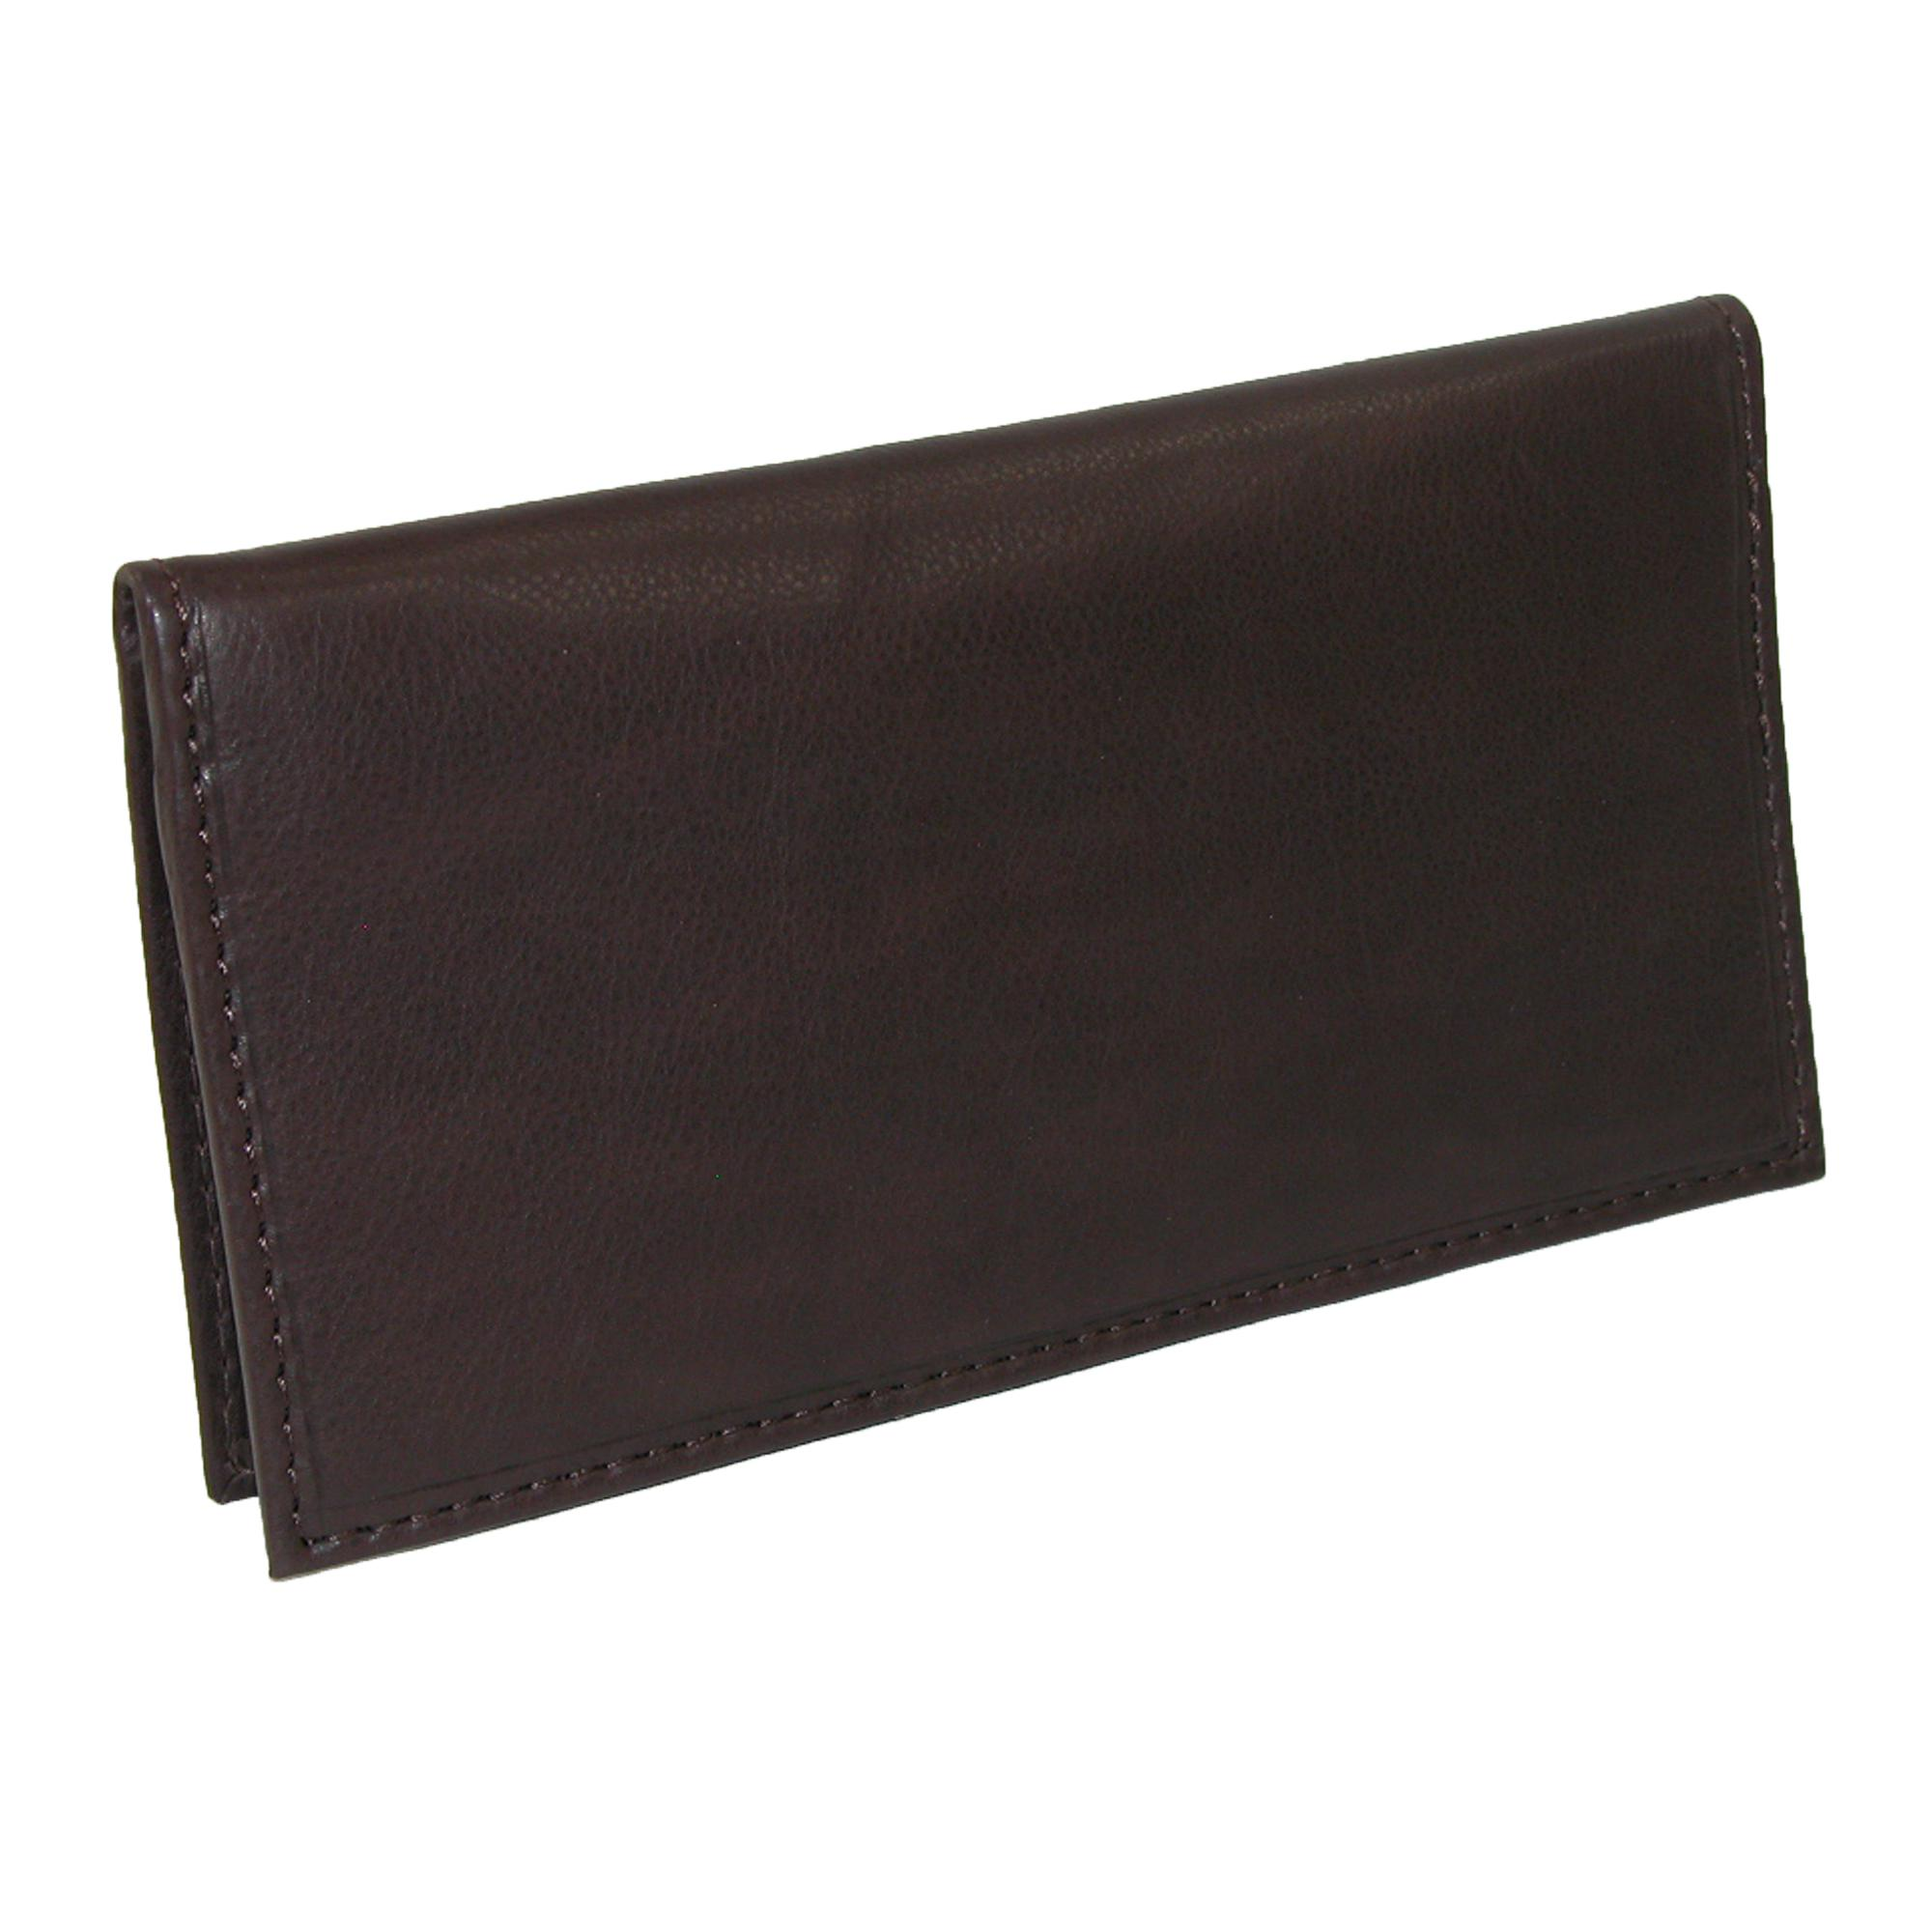 Paul_&_Taylor_Leather_Card_Holder_and_Checkbook_Cover_Wallet_-